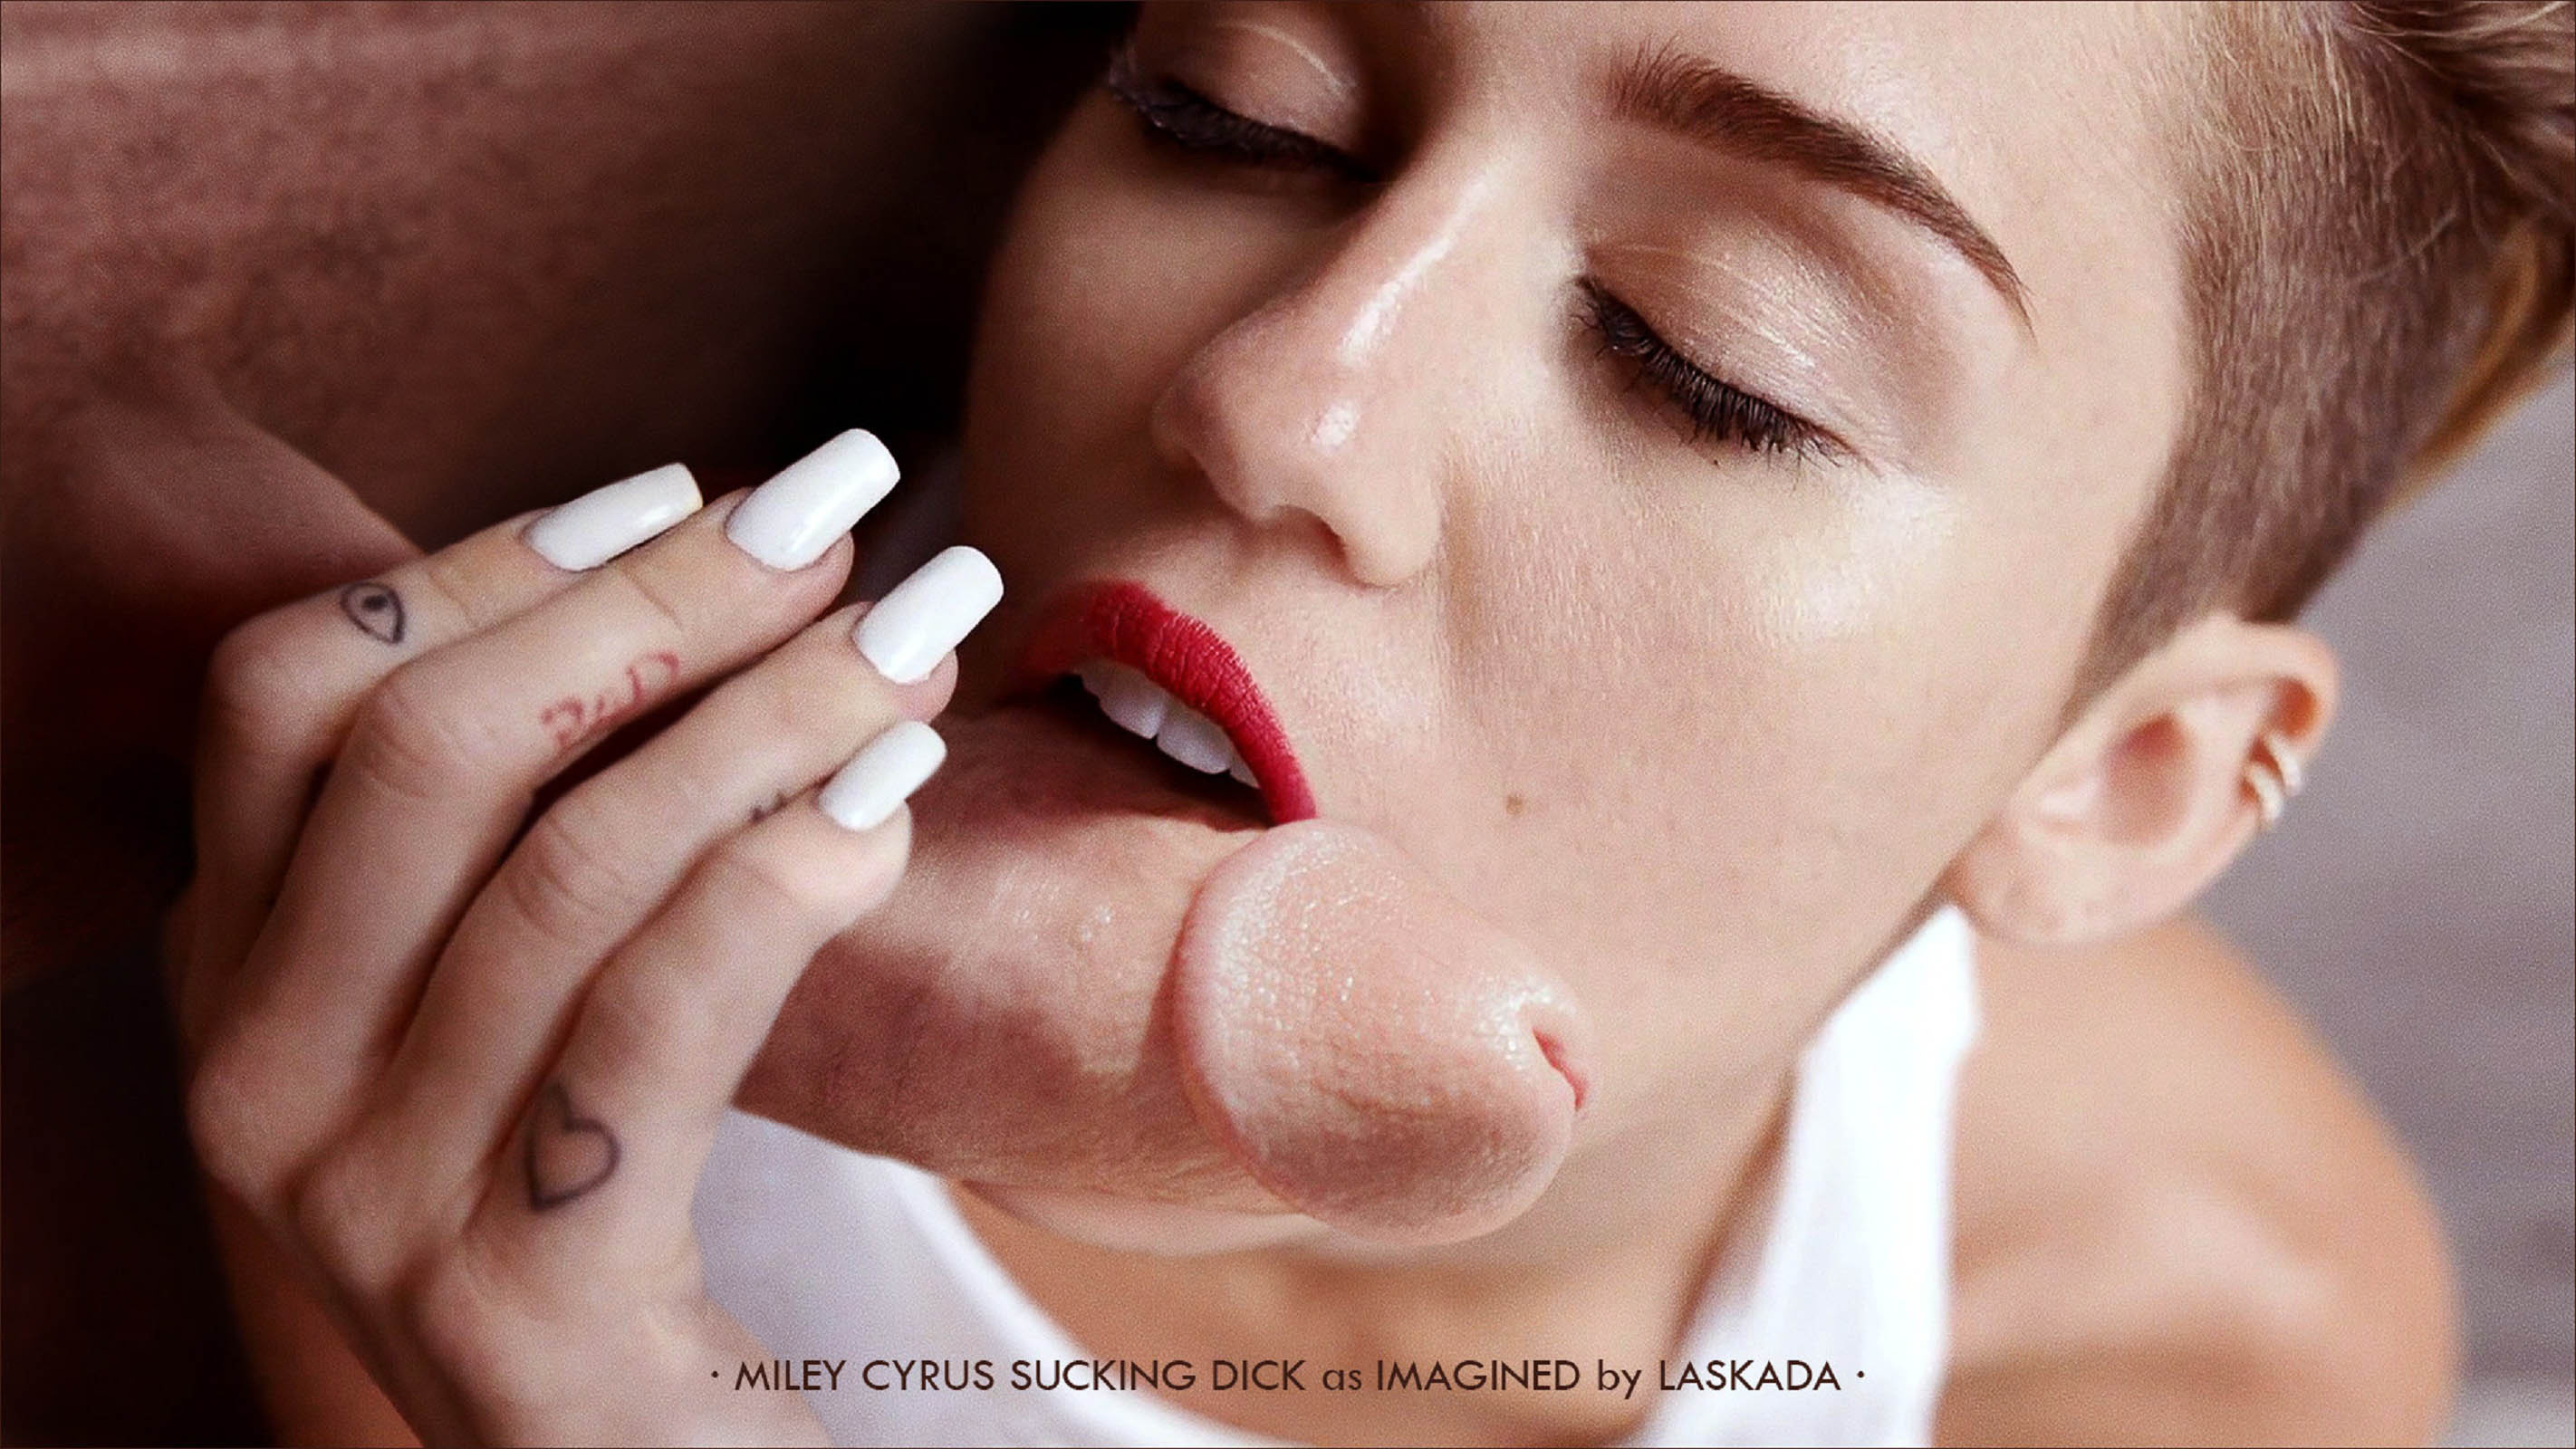 fake blowjob cyrus Miley